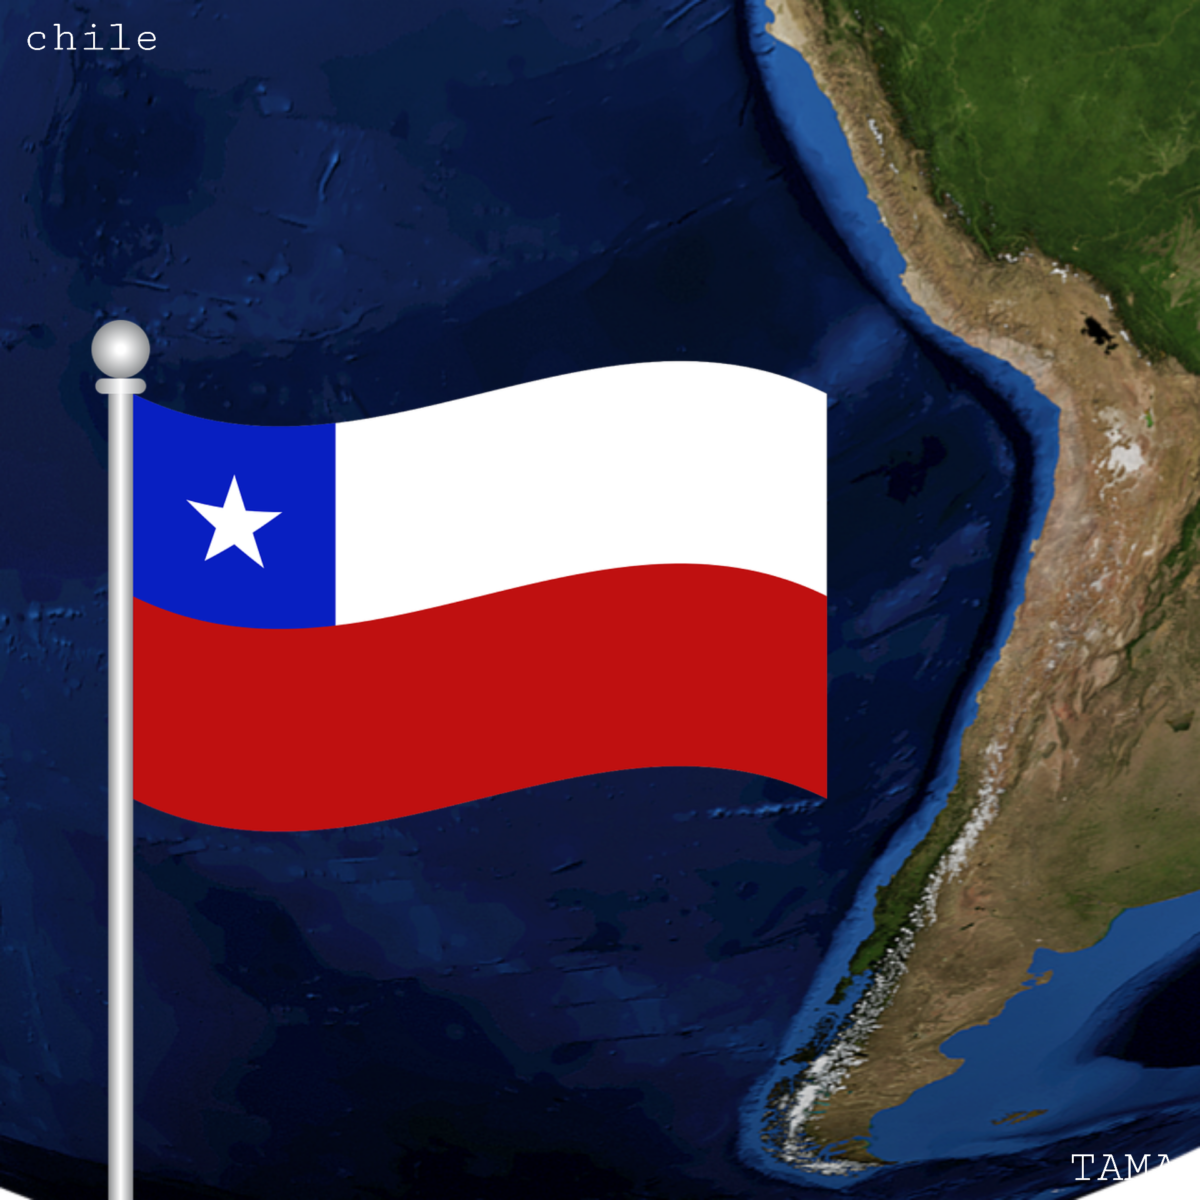 Independence Day in Chile